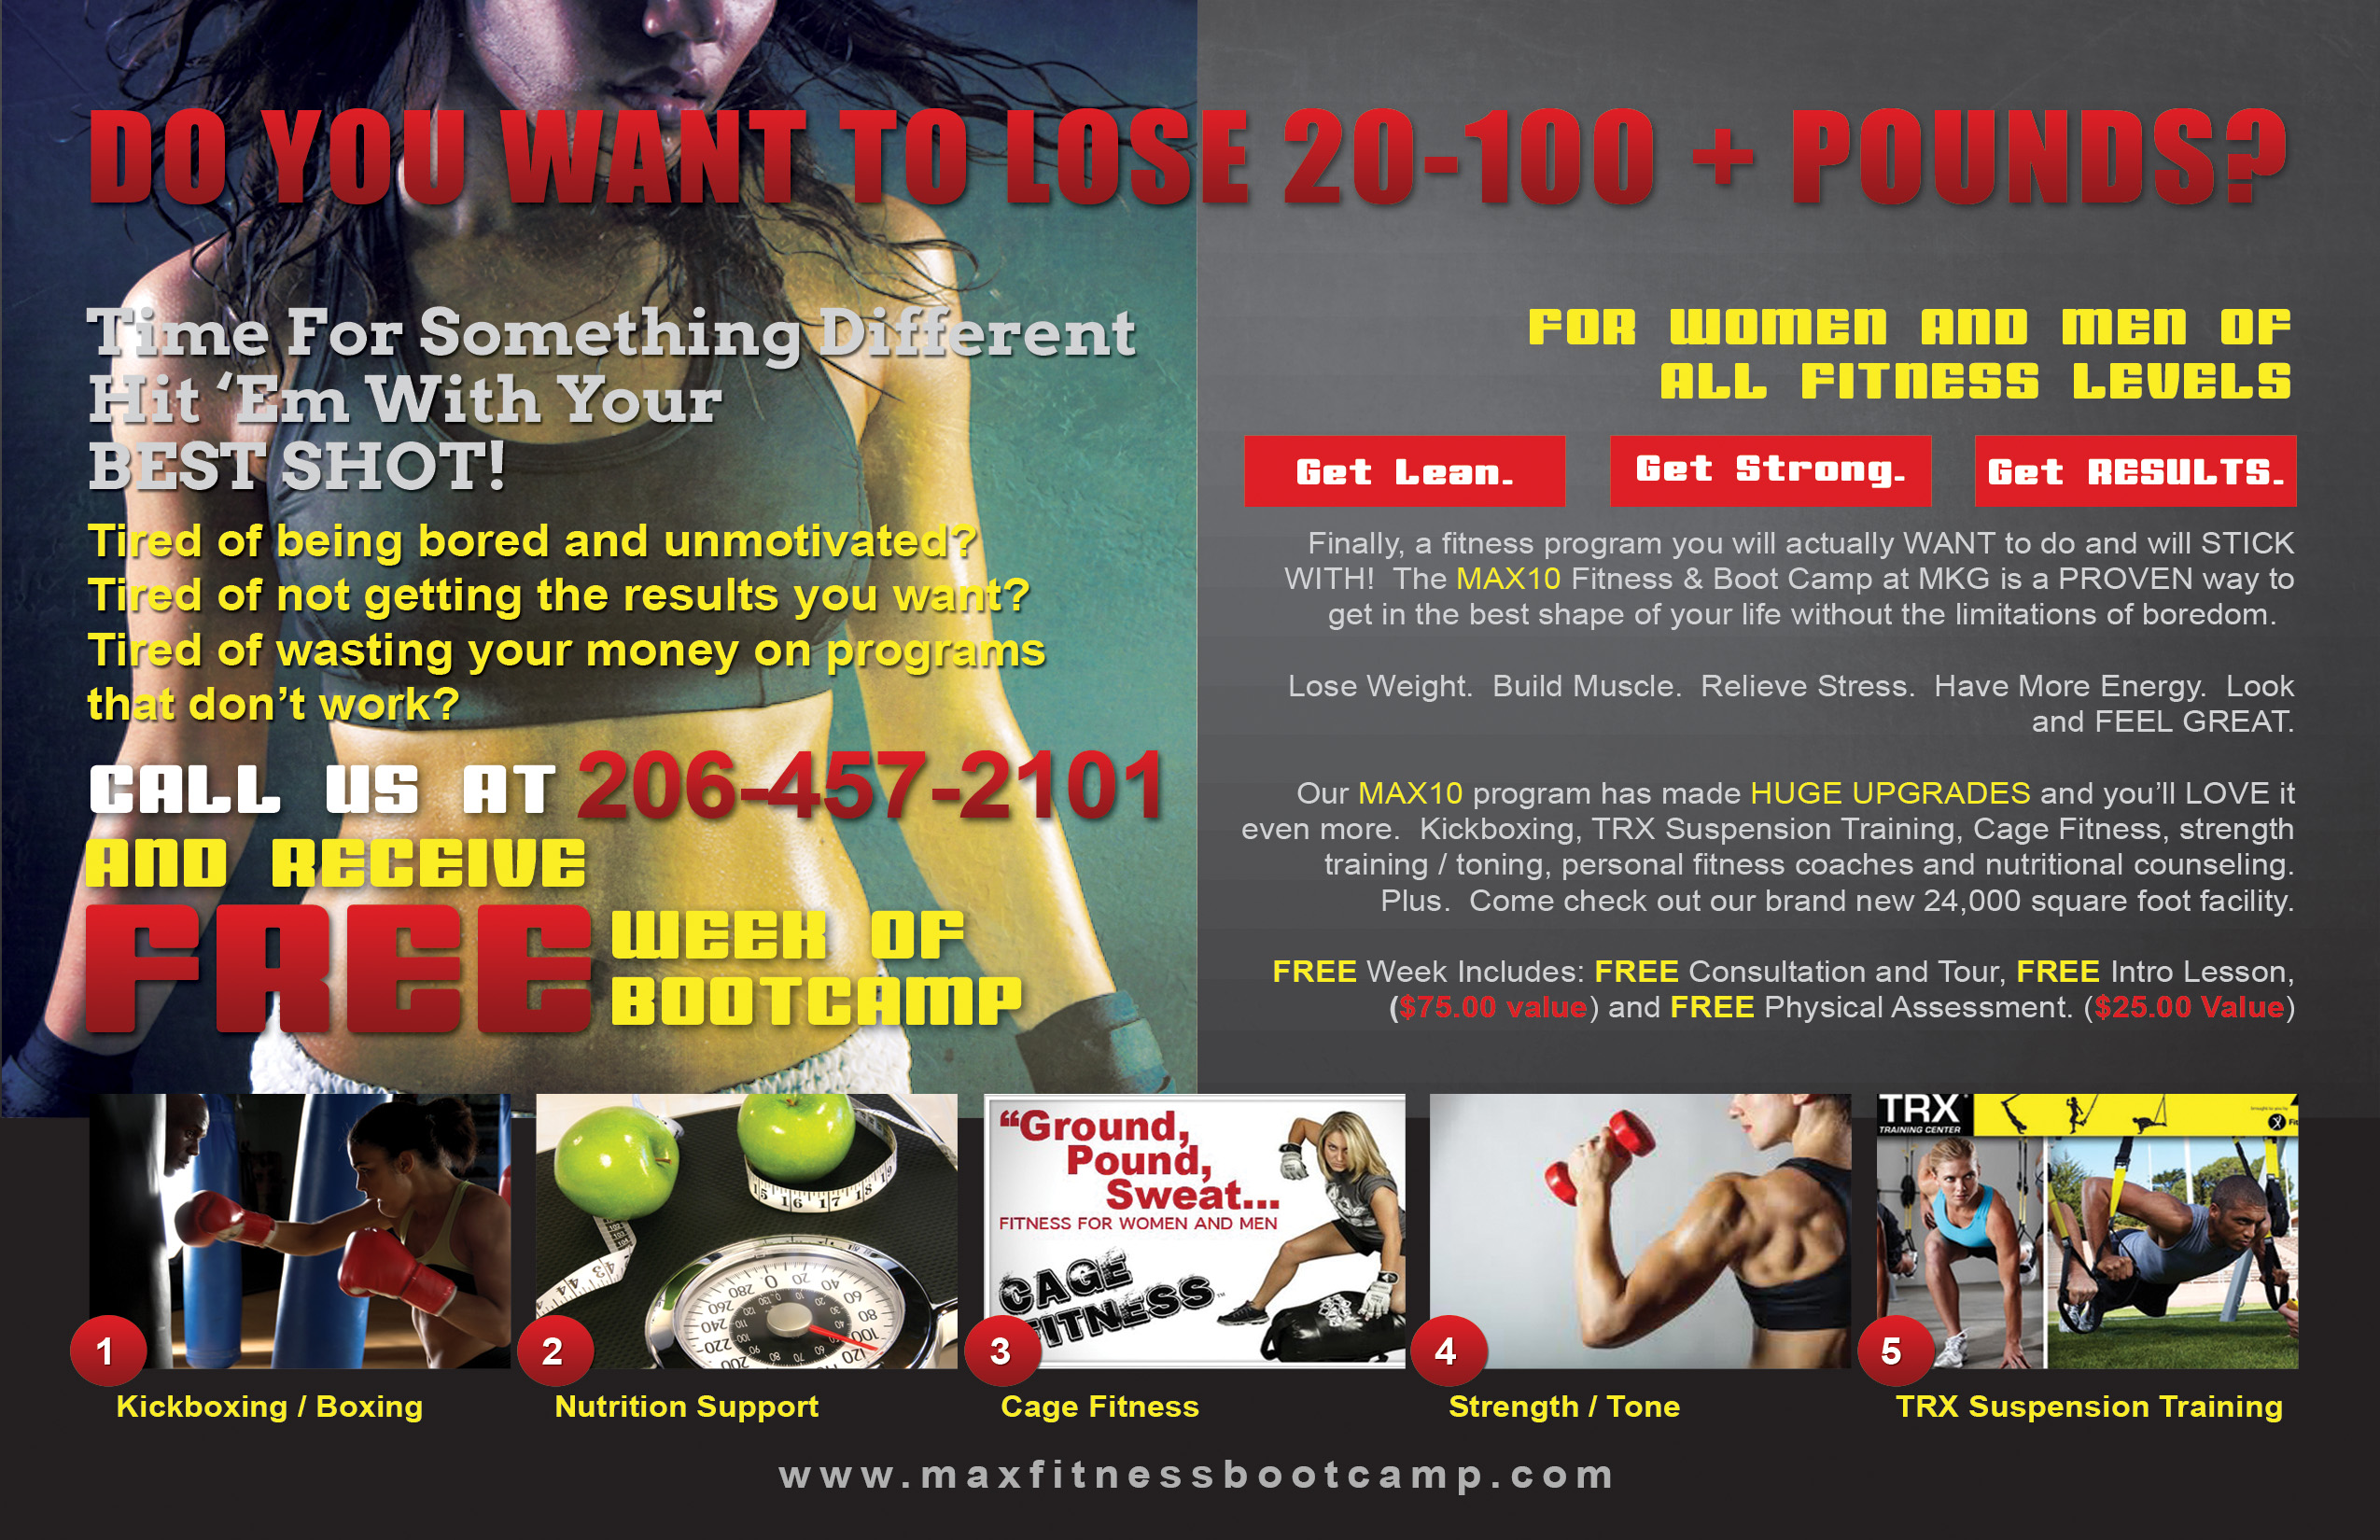 MAX Fitness Boot Camp in Seattle